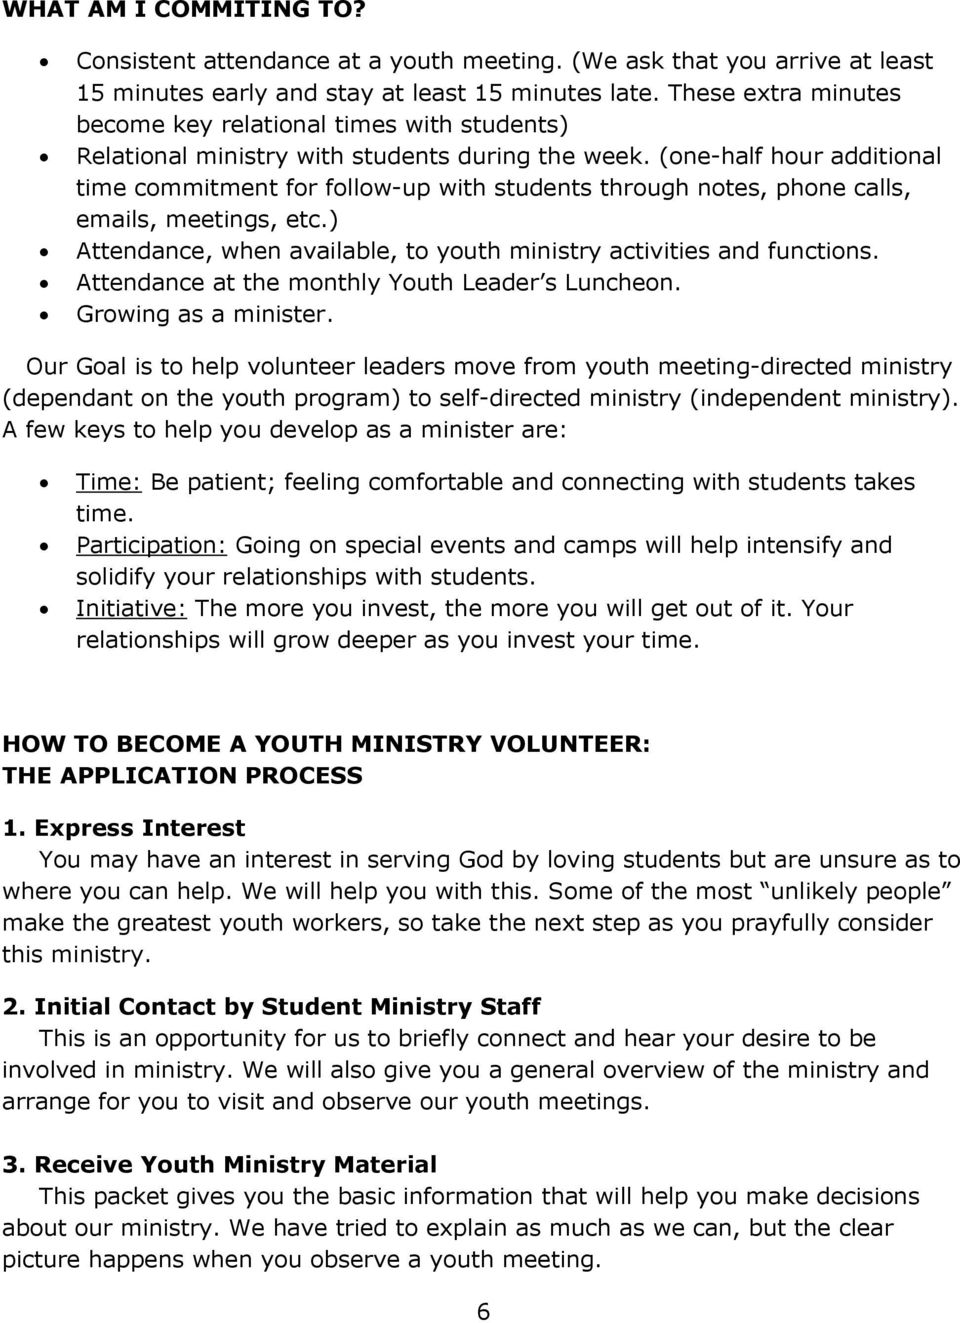 (one-half hour additional time commitment for follow-up with students through notes, phone calls, emails, meetings, etc.) Attendance, when available, to youth ministry activities and functions.